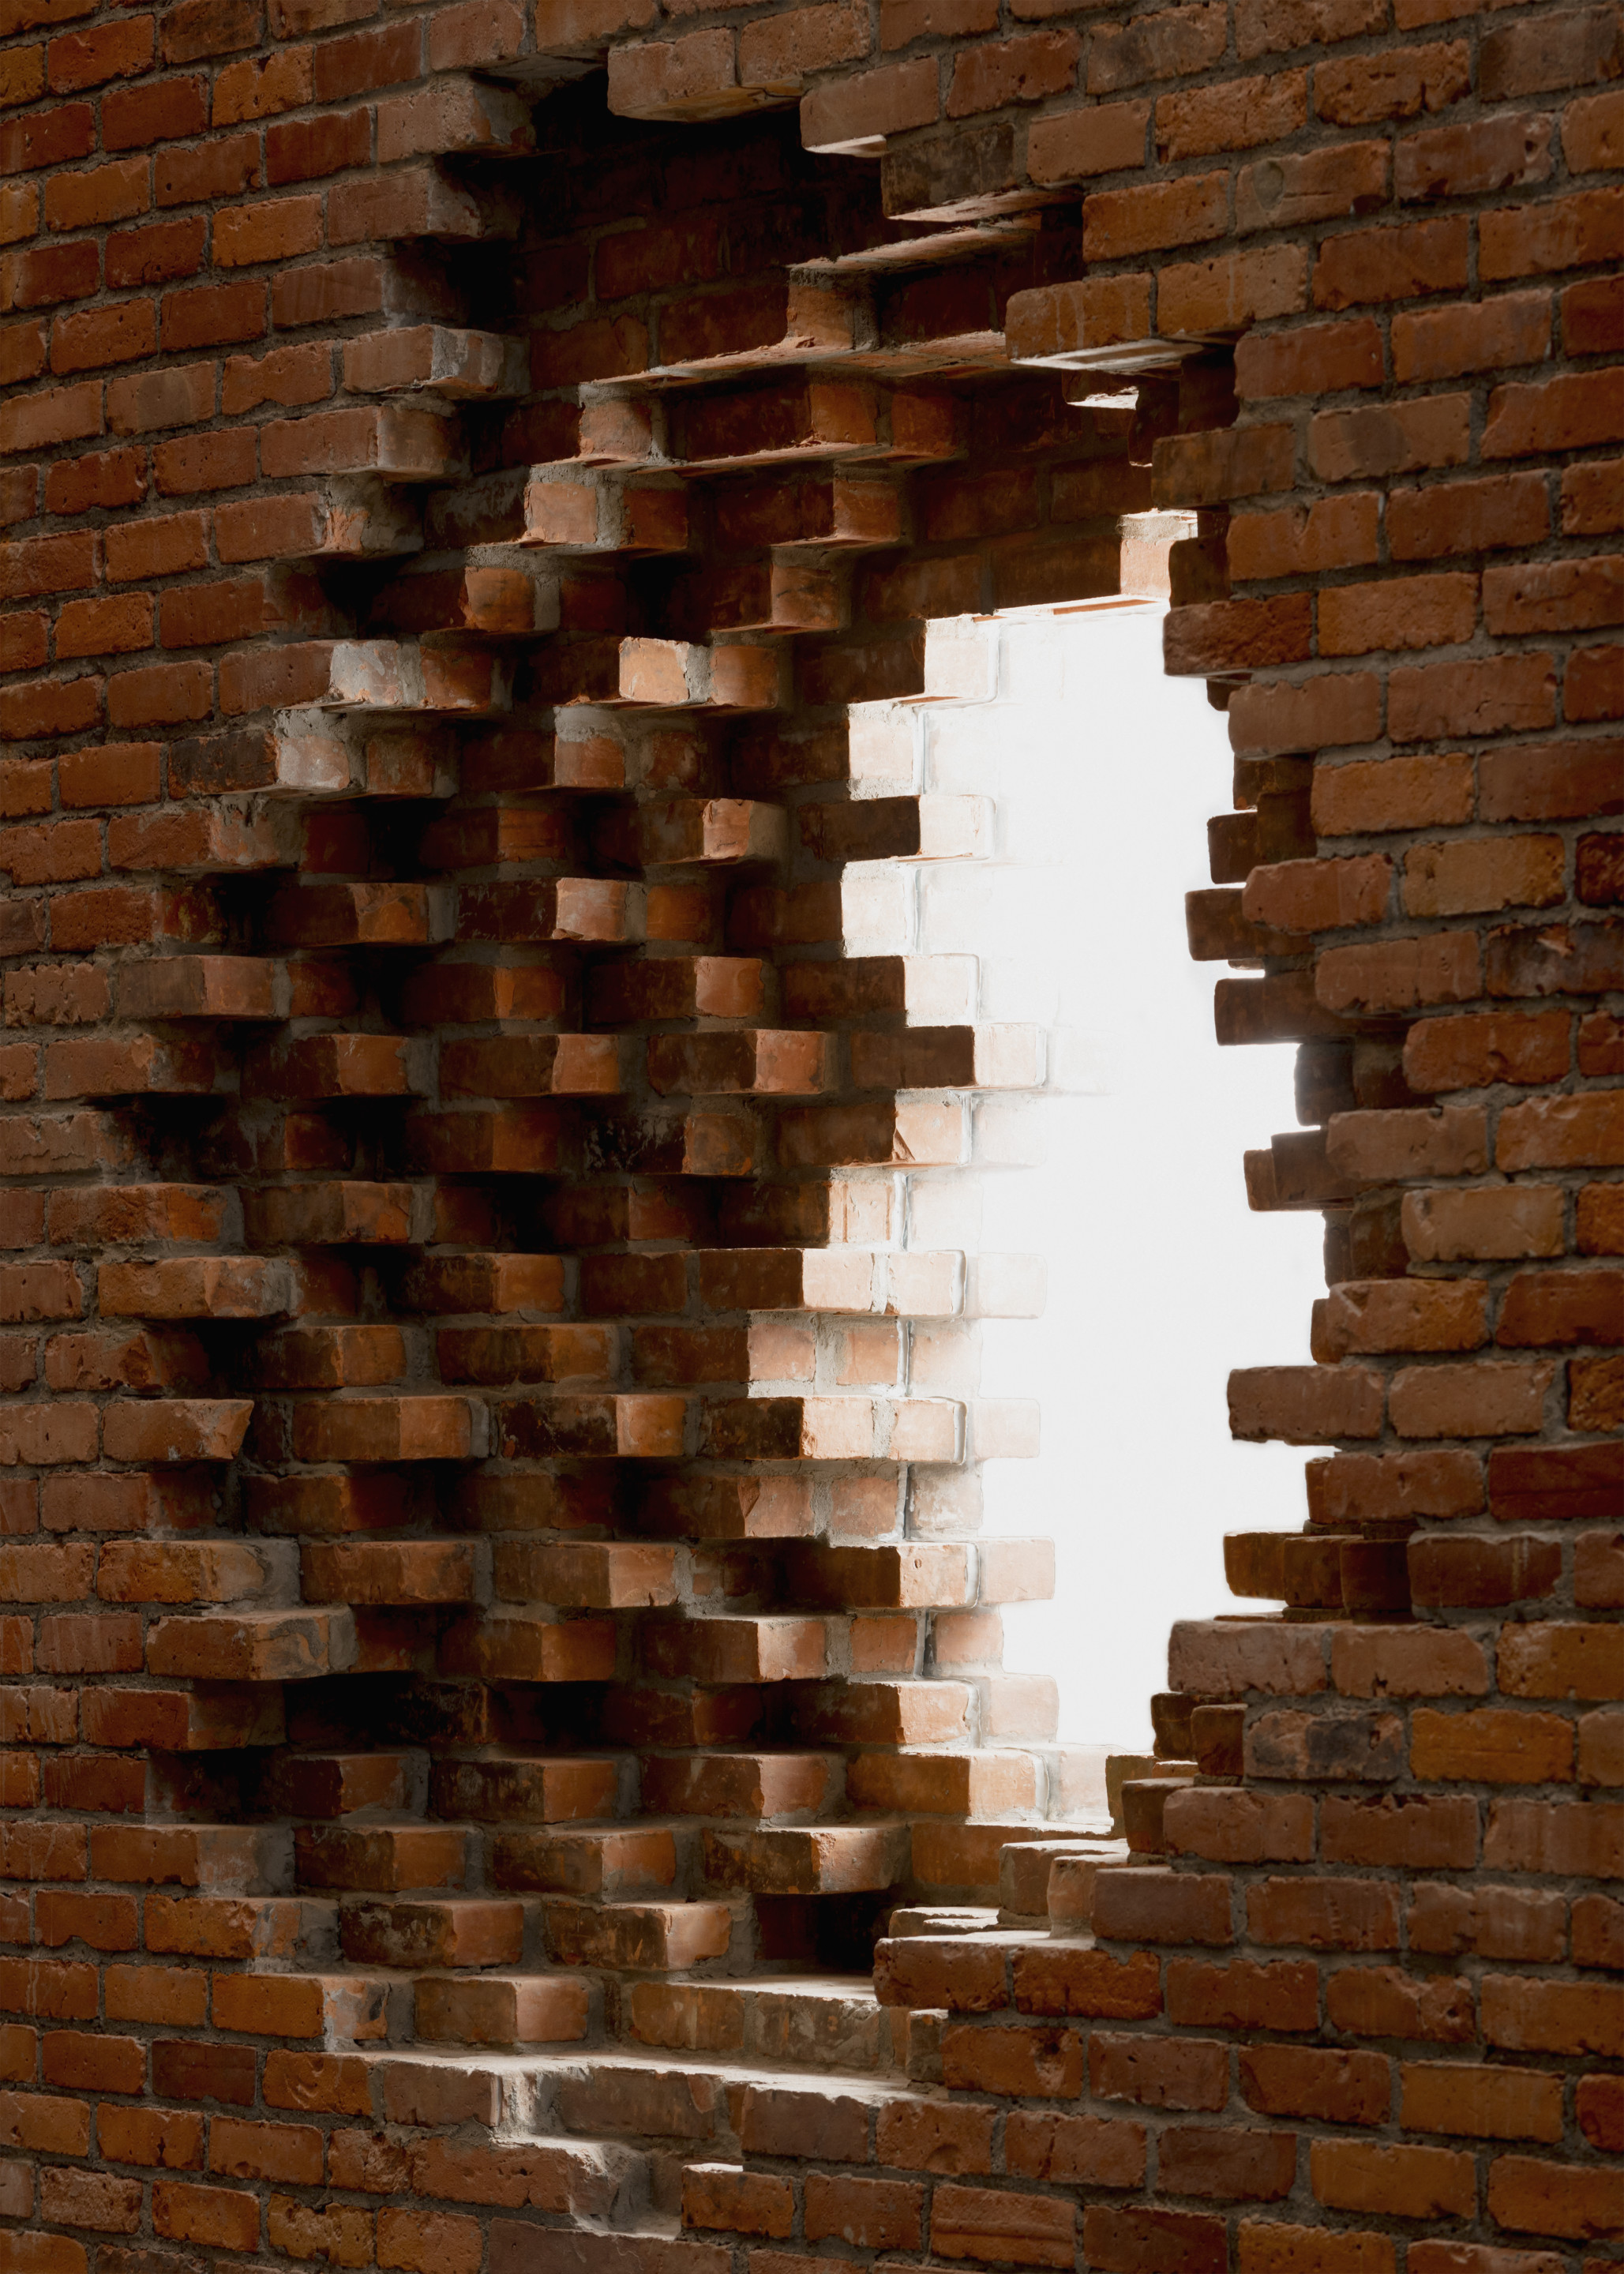 a brick-built architectural encroachment on a wall